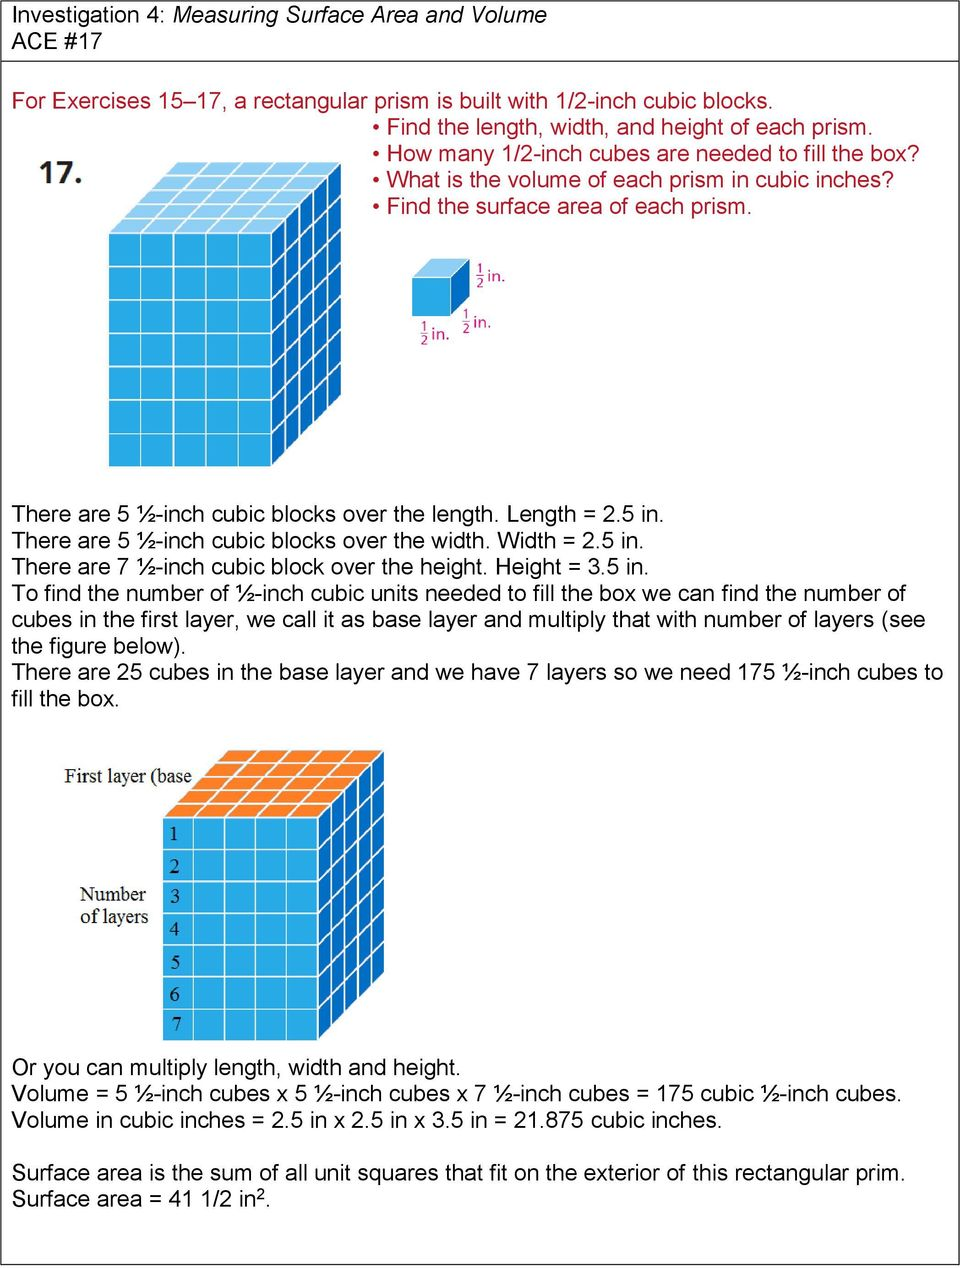 5 in. There are 5 ½-inch cubic blocks over the width. Width = 2.5 in. There are 7 ½-inch cubic block over the height. Height = 3.5 in. To find the number of ½-inch cubic units needed to fill the box